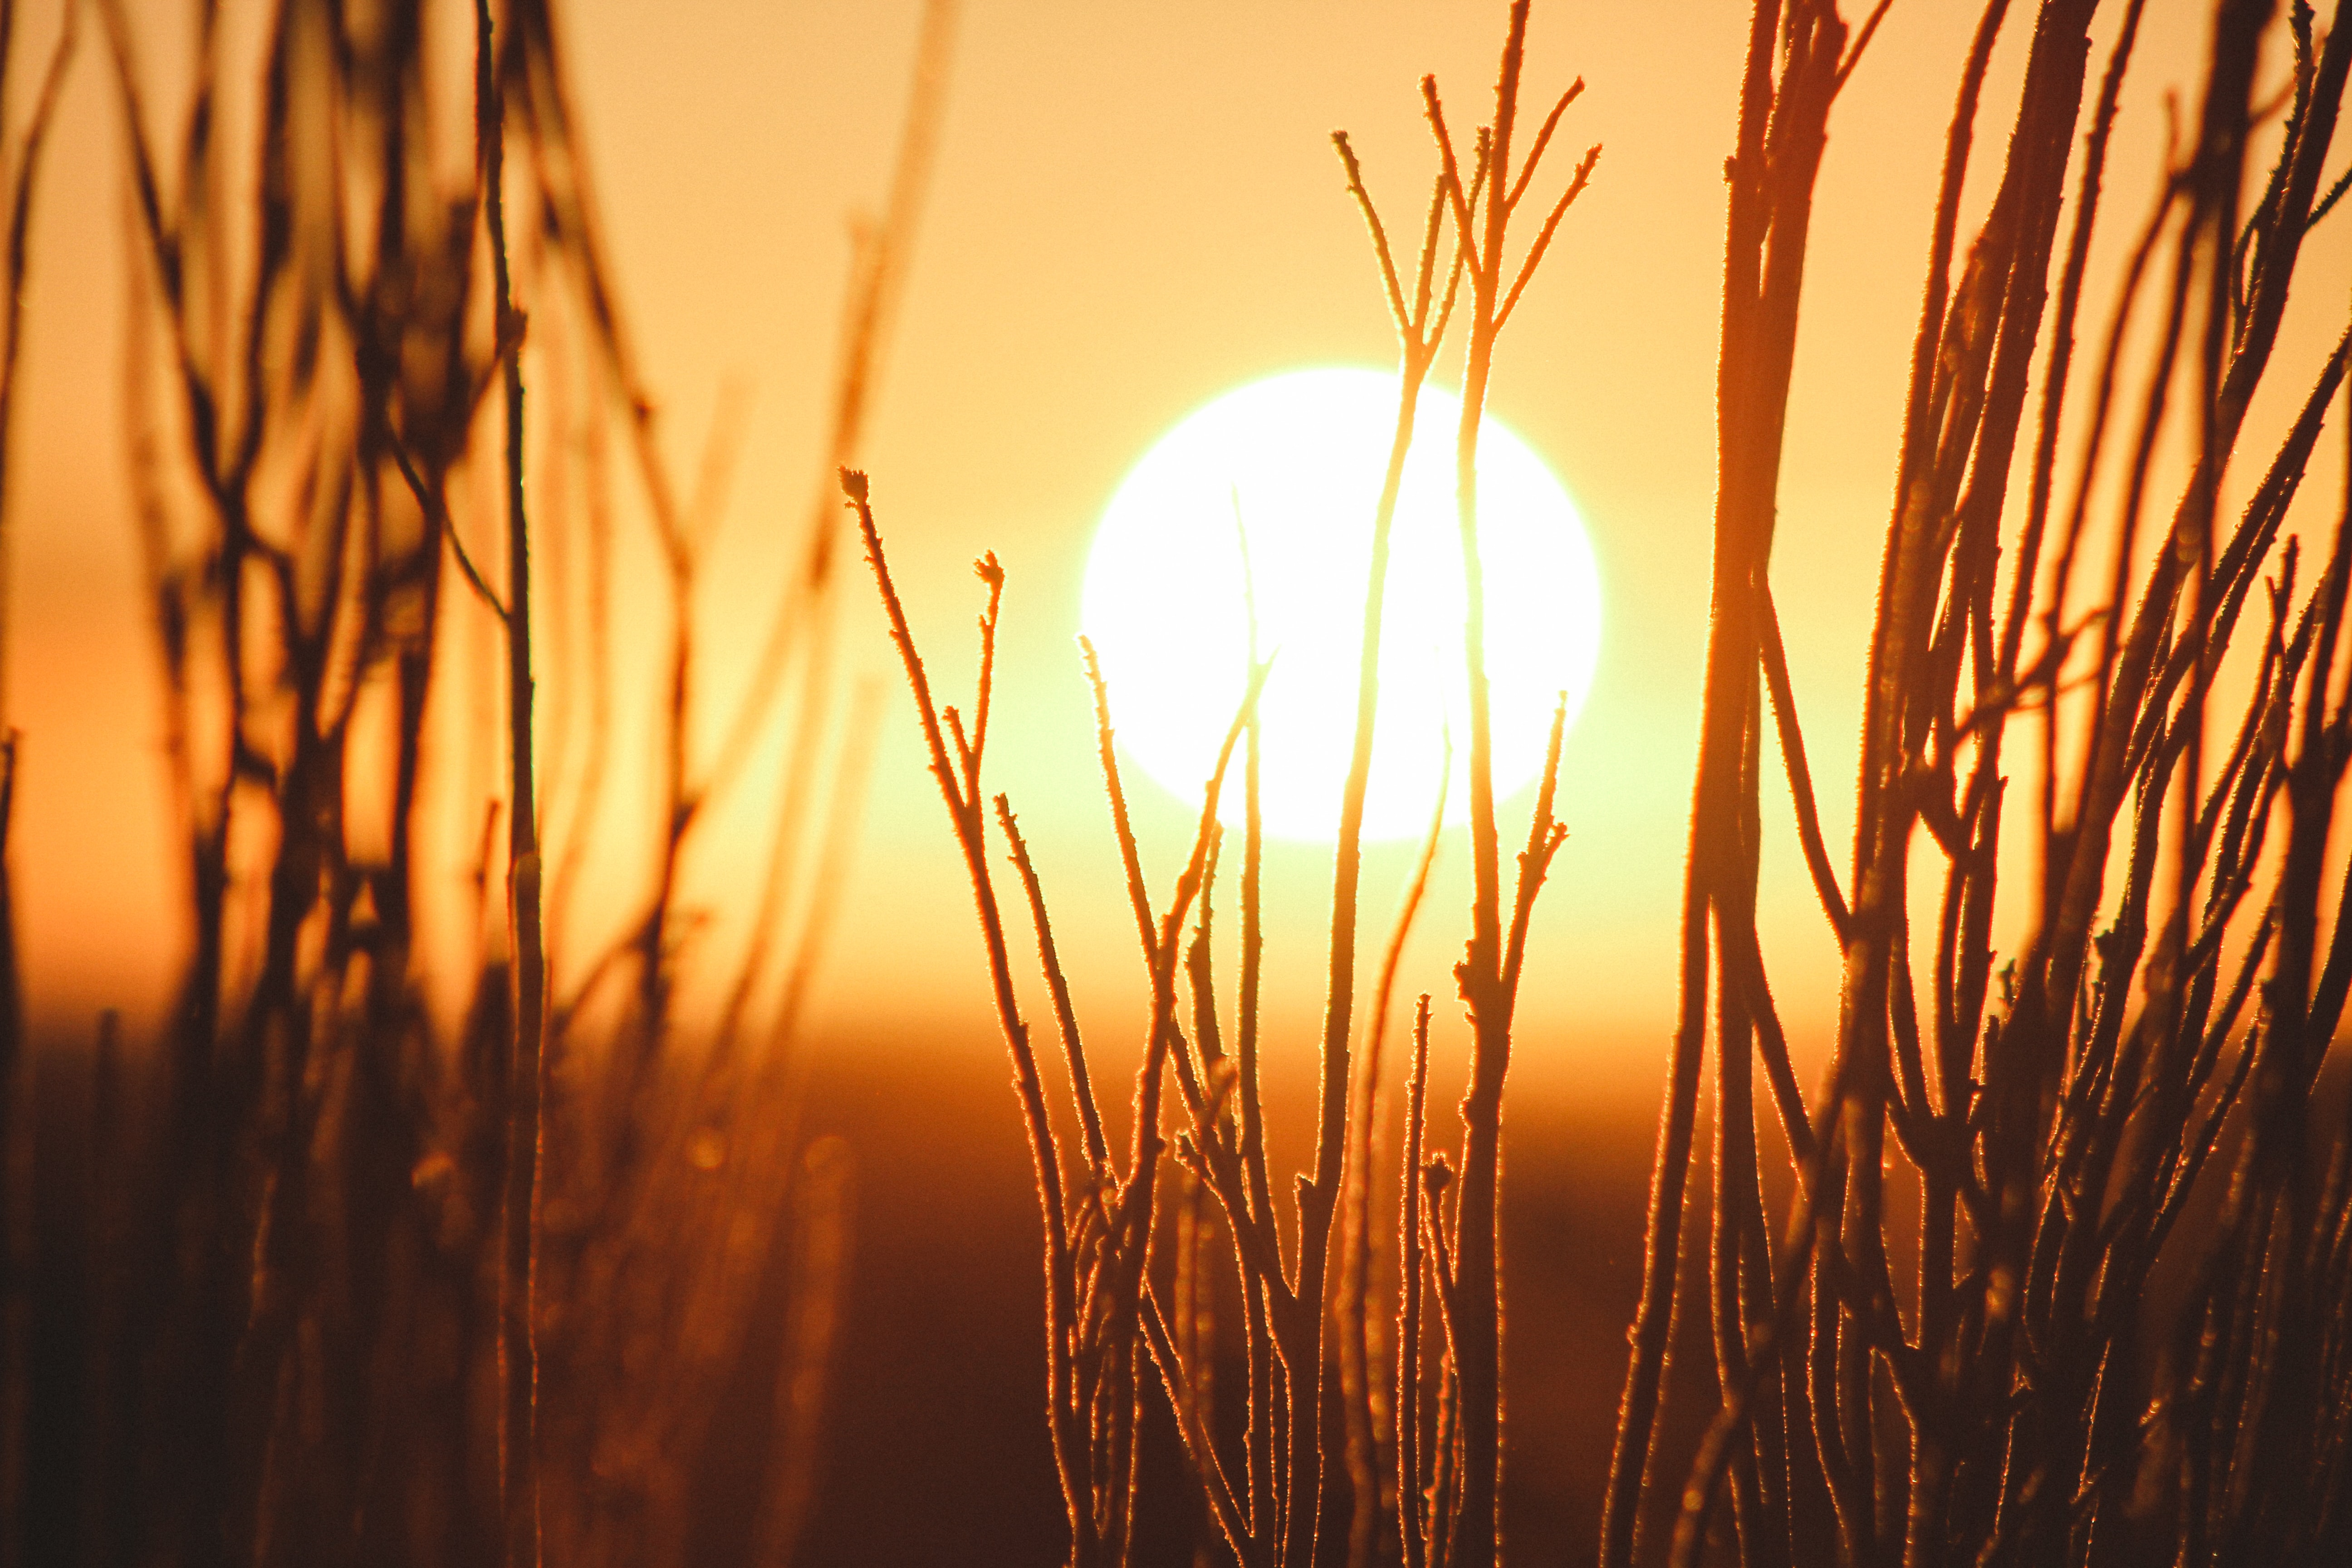 shallow focus photography of grains with sun